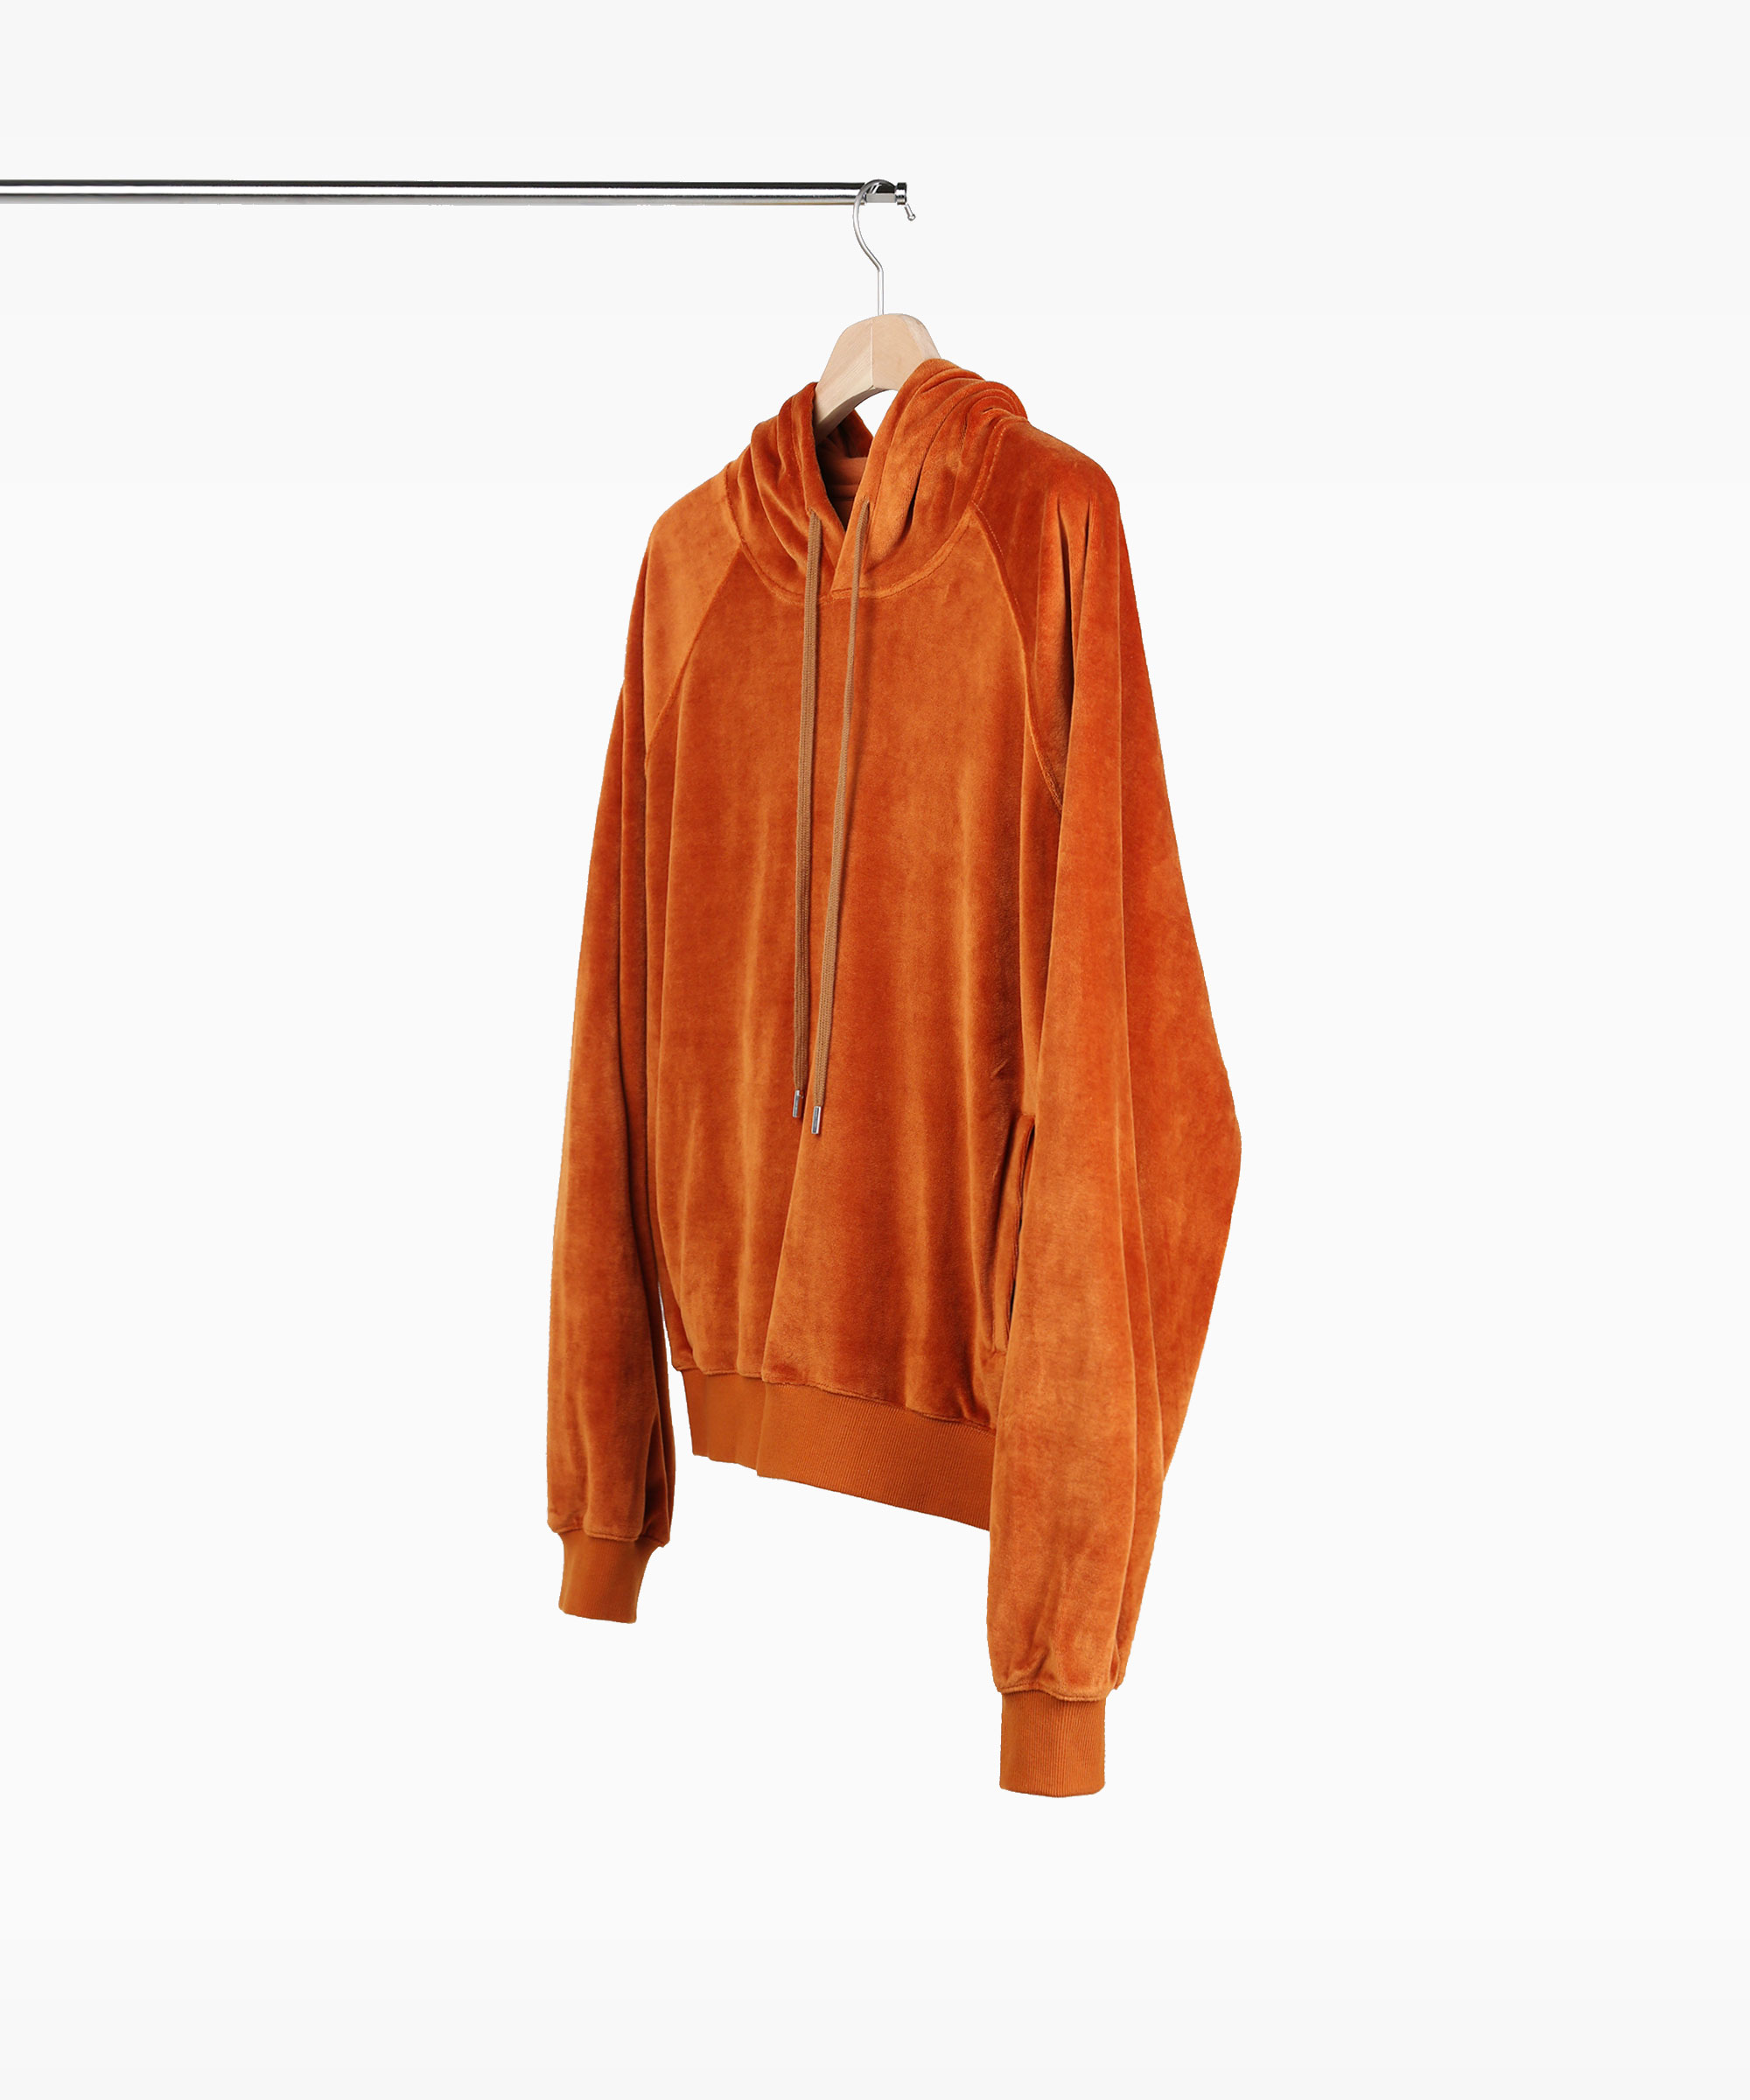 VELVET HOOD SWEAT SHIRTS ORANGE  (2월 25일 예약발송)